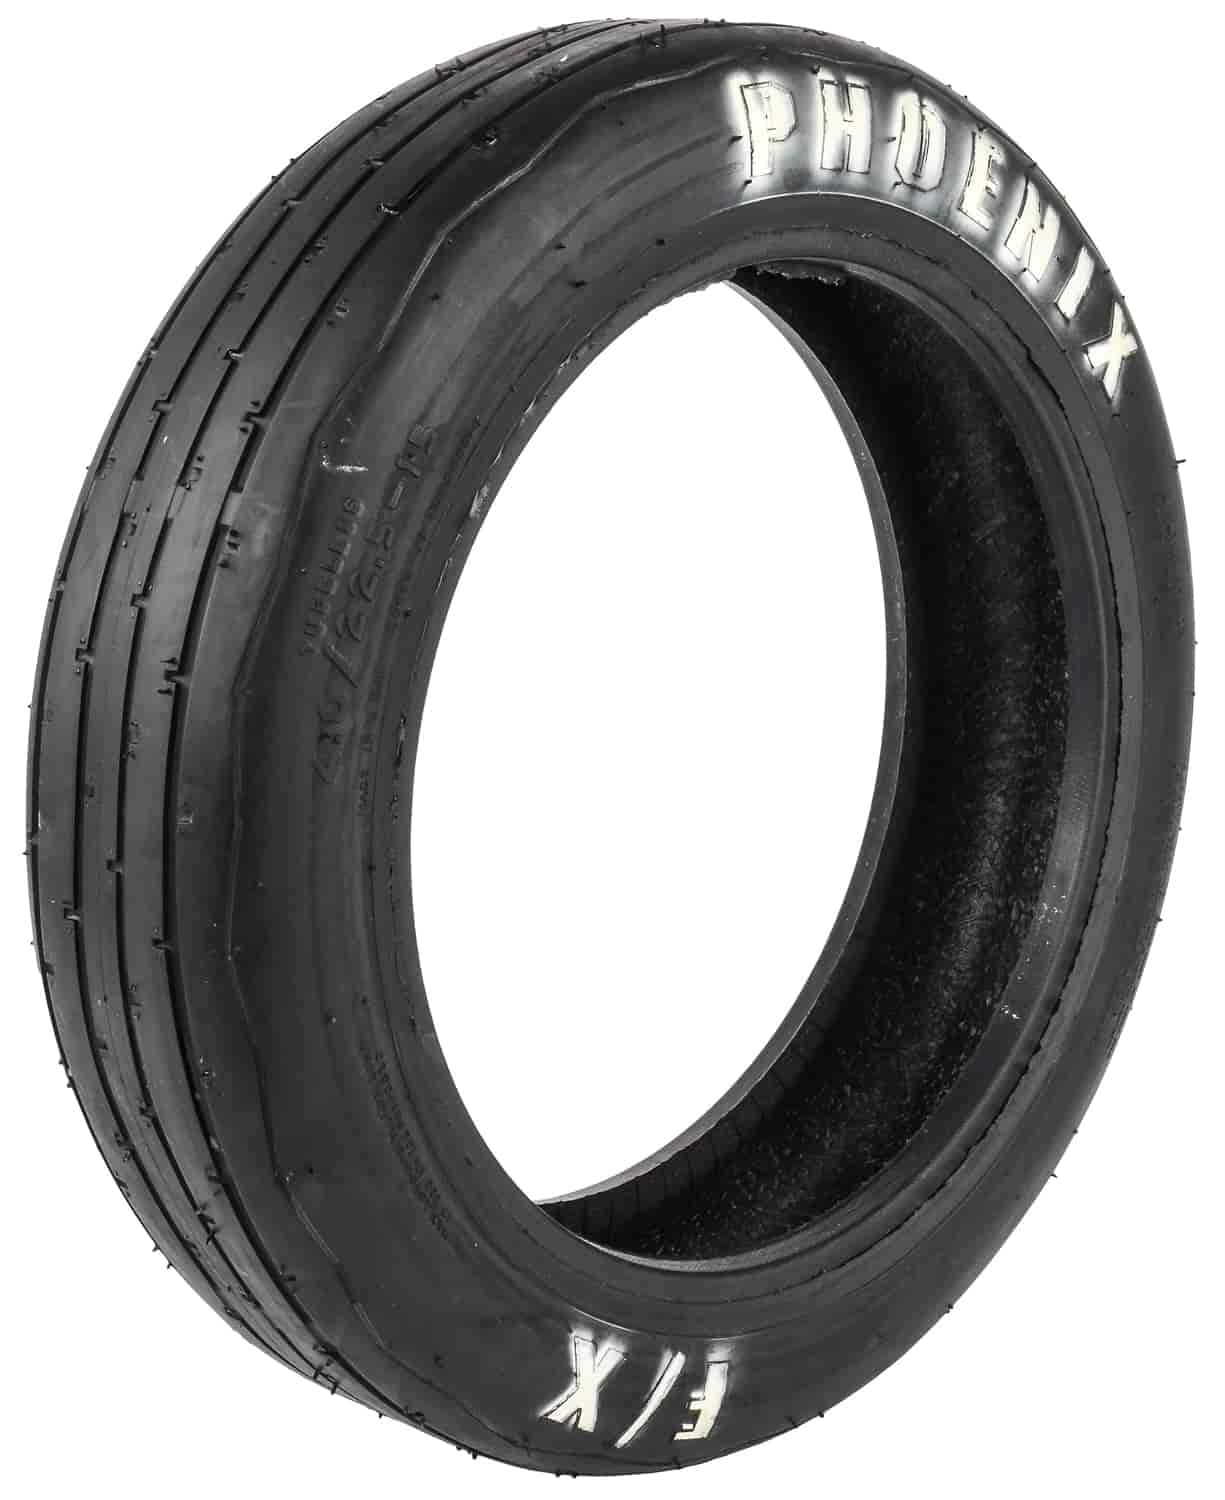 Phoenix Drag Tires PH426